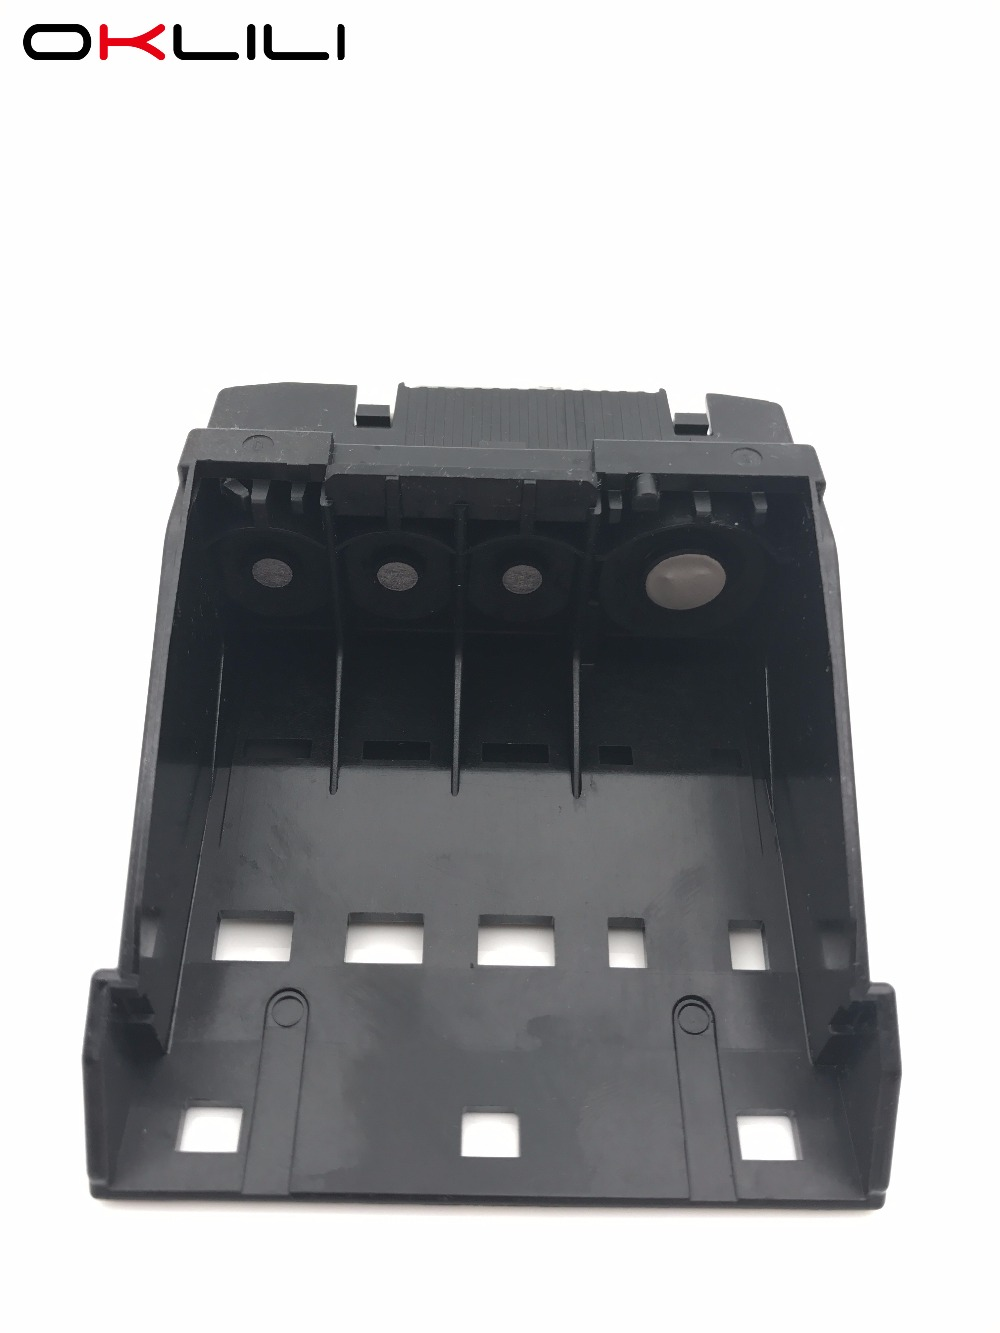 OKLILI ORIGINAL QY6-0045 QY6-0045-000 Printhead Print Head Printer Head for Canon i550 PIXUS 550i new original print head qy6 0061 00 printhead for canon ip4300 ip5200 ip5200r mp600 mp600r mp800 mp800r mp830 plotter